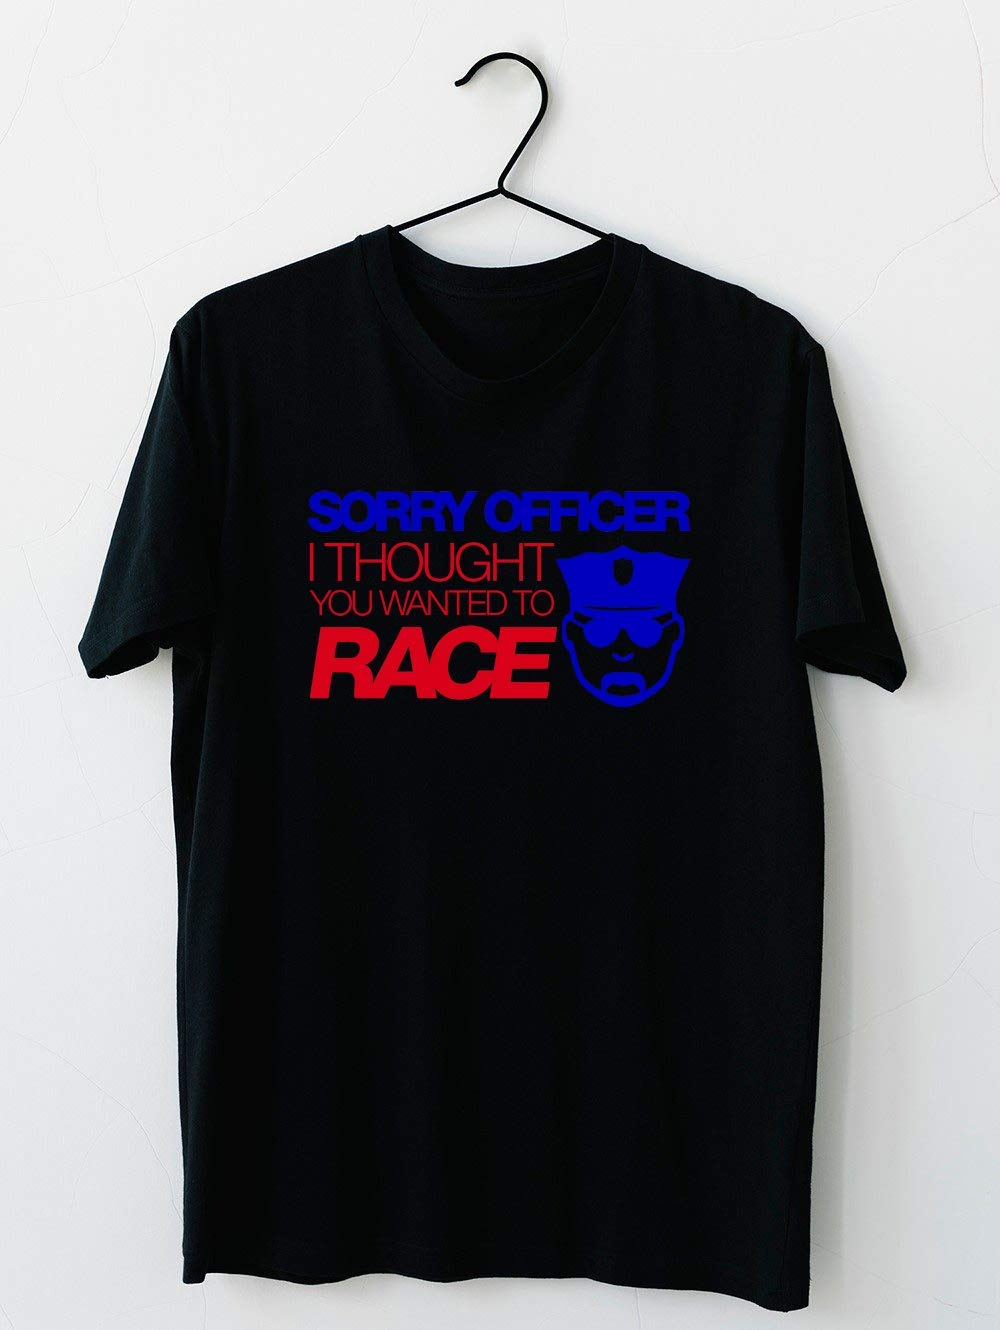 Sorry Officer I Thought You Wanted To Race 7 Short Sleeve For M Shirts